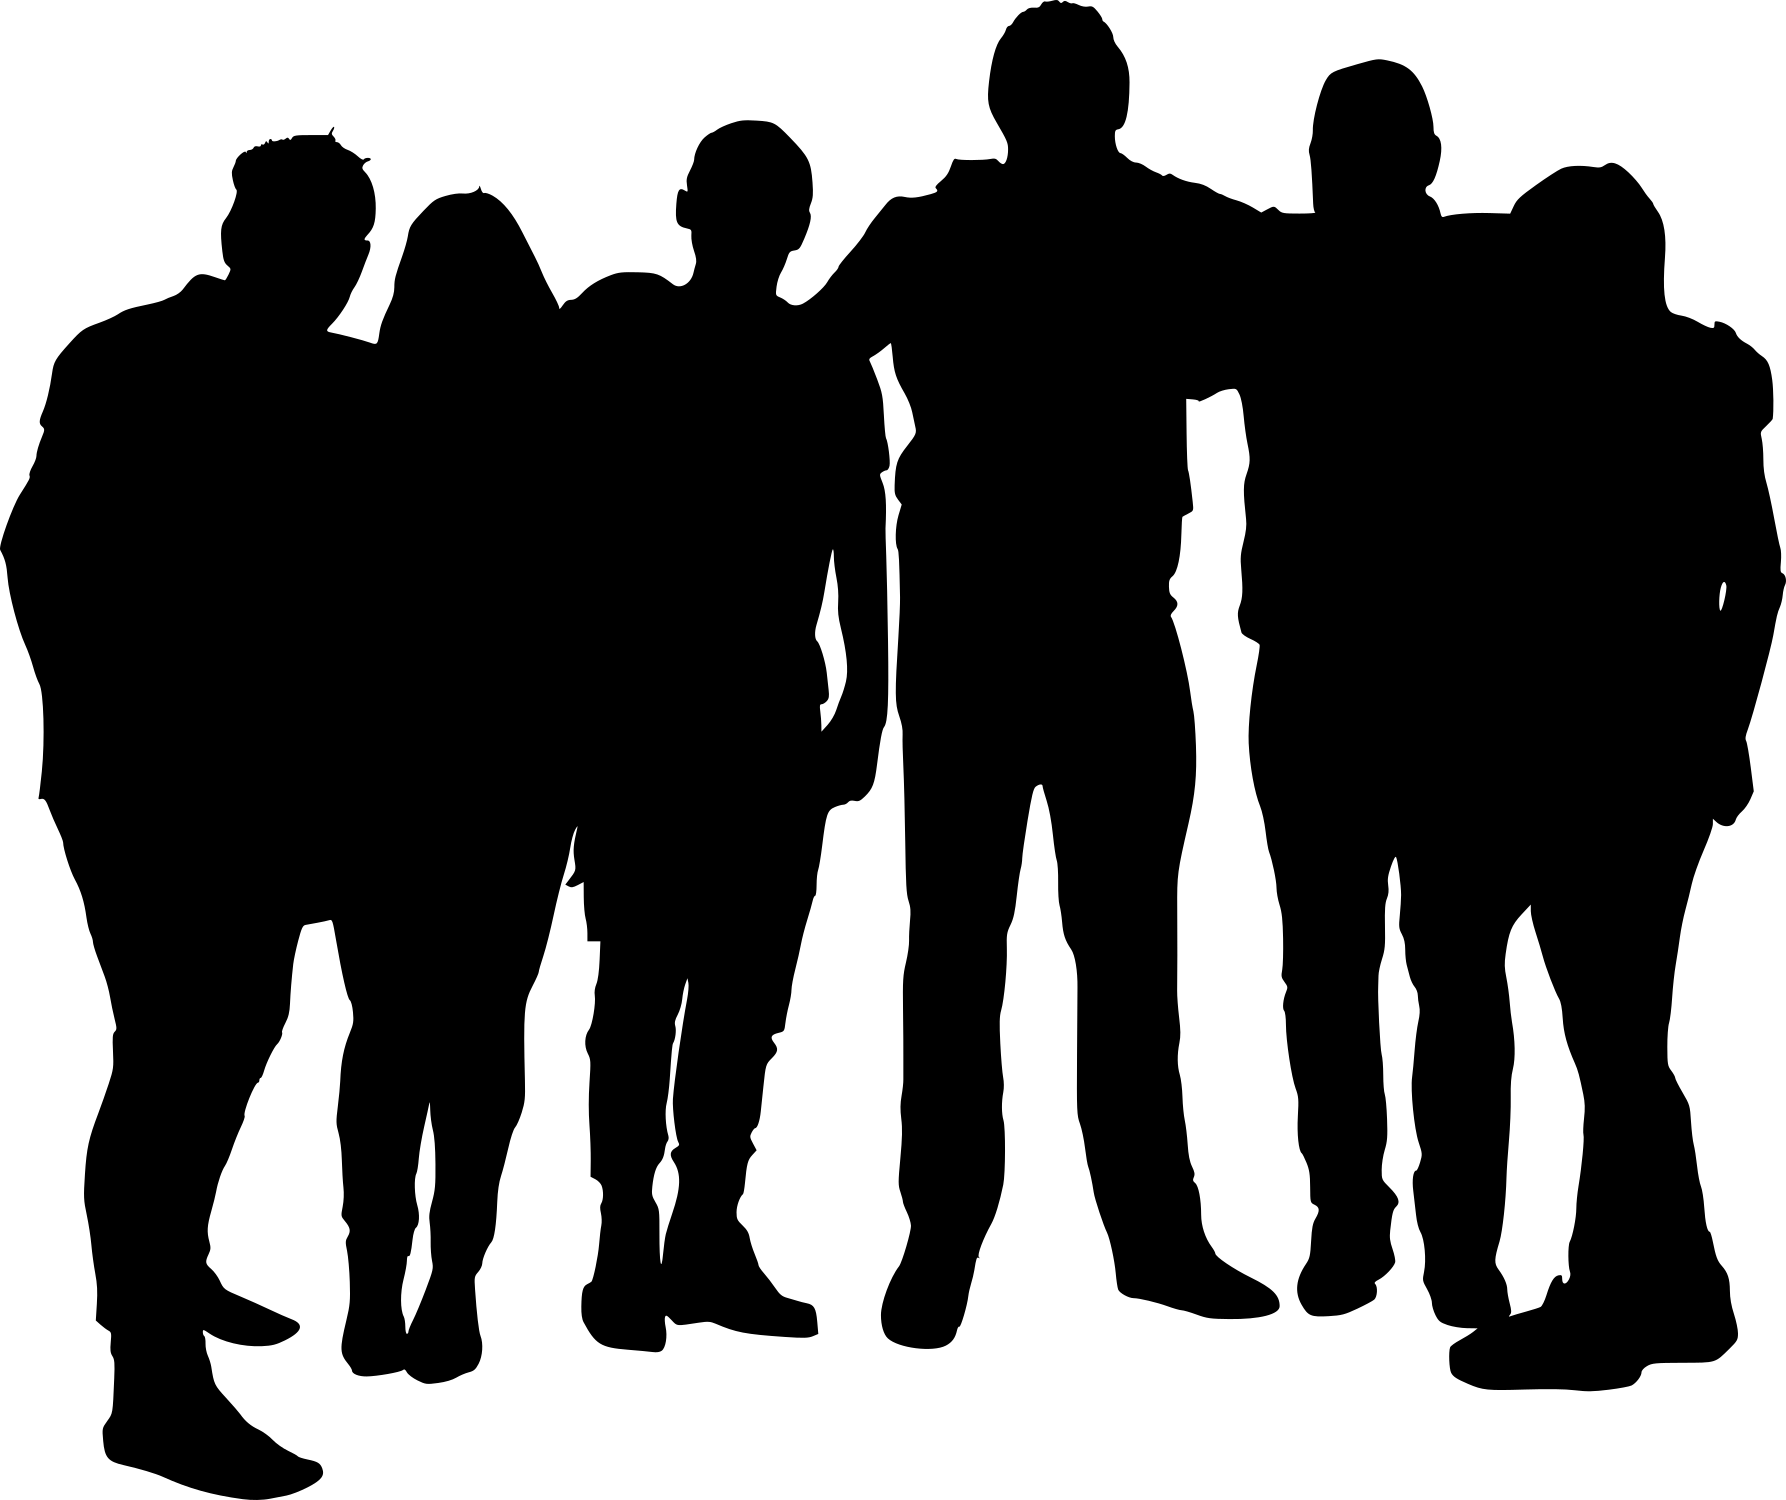 group-photo-posing-silhouette-4.png